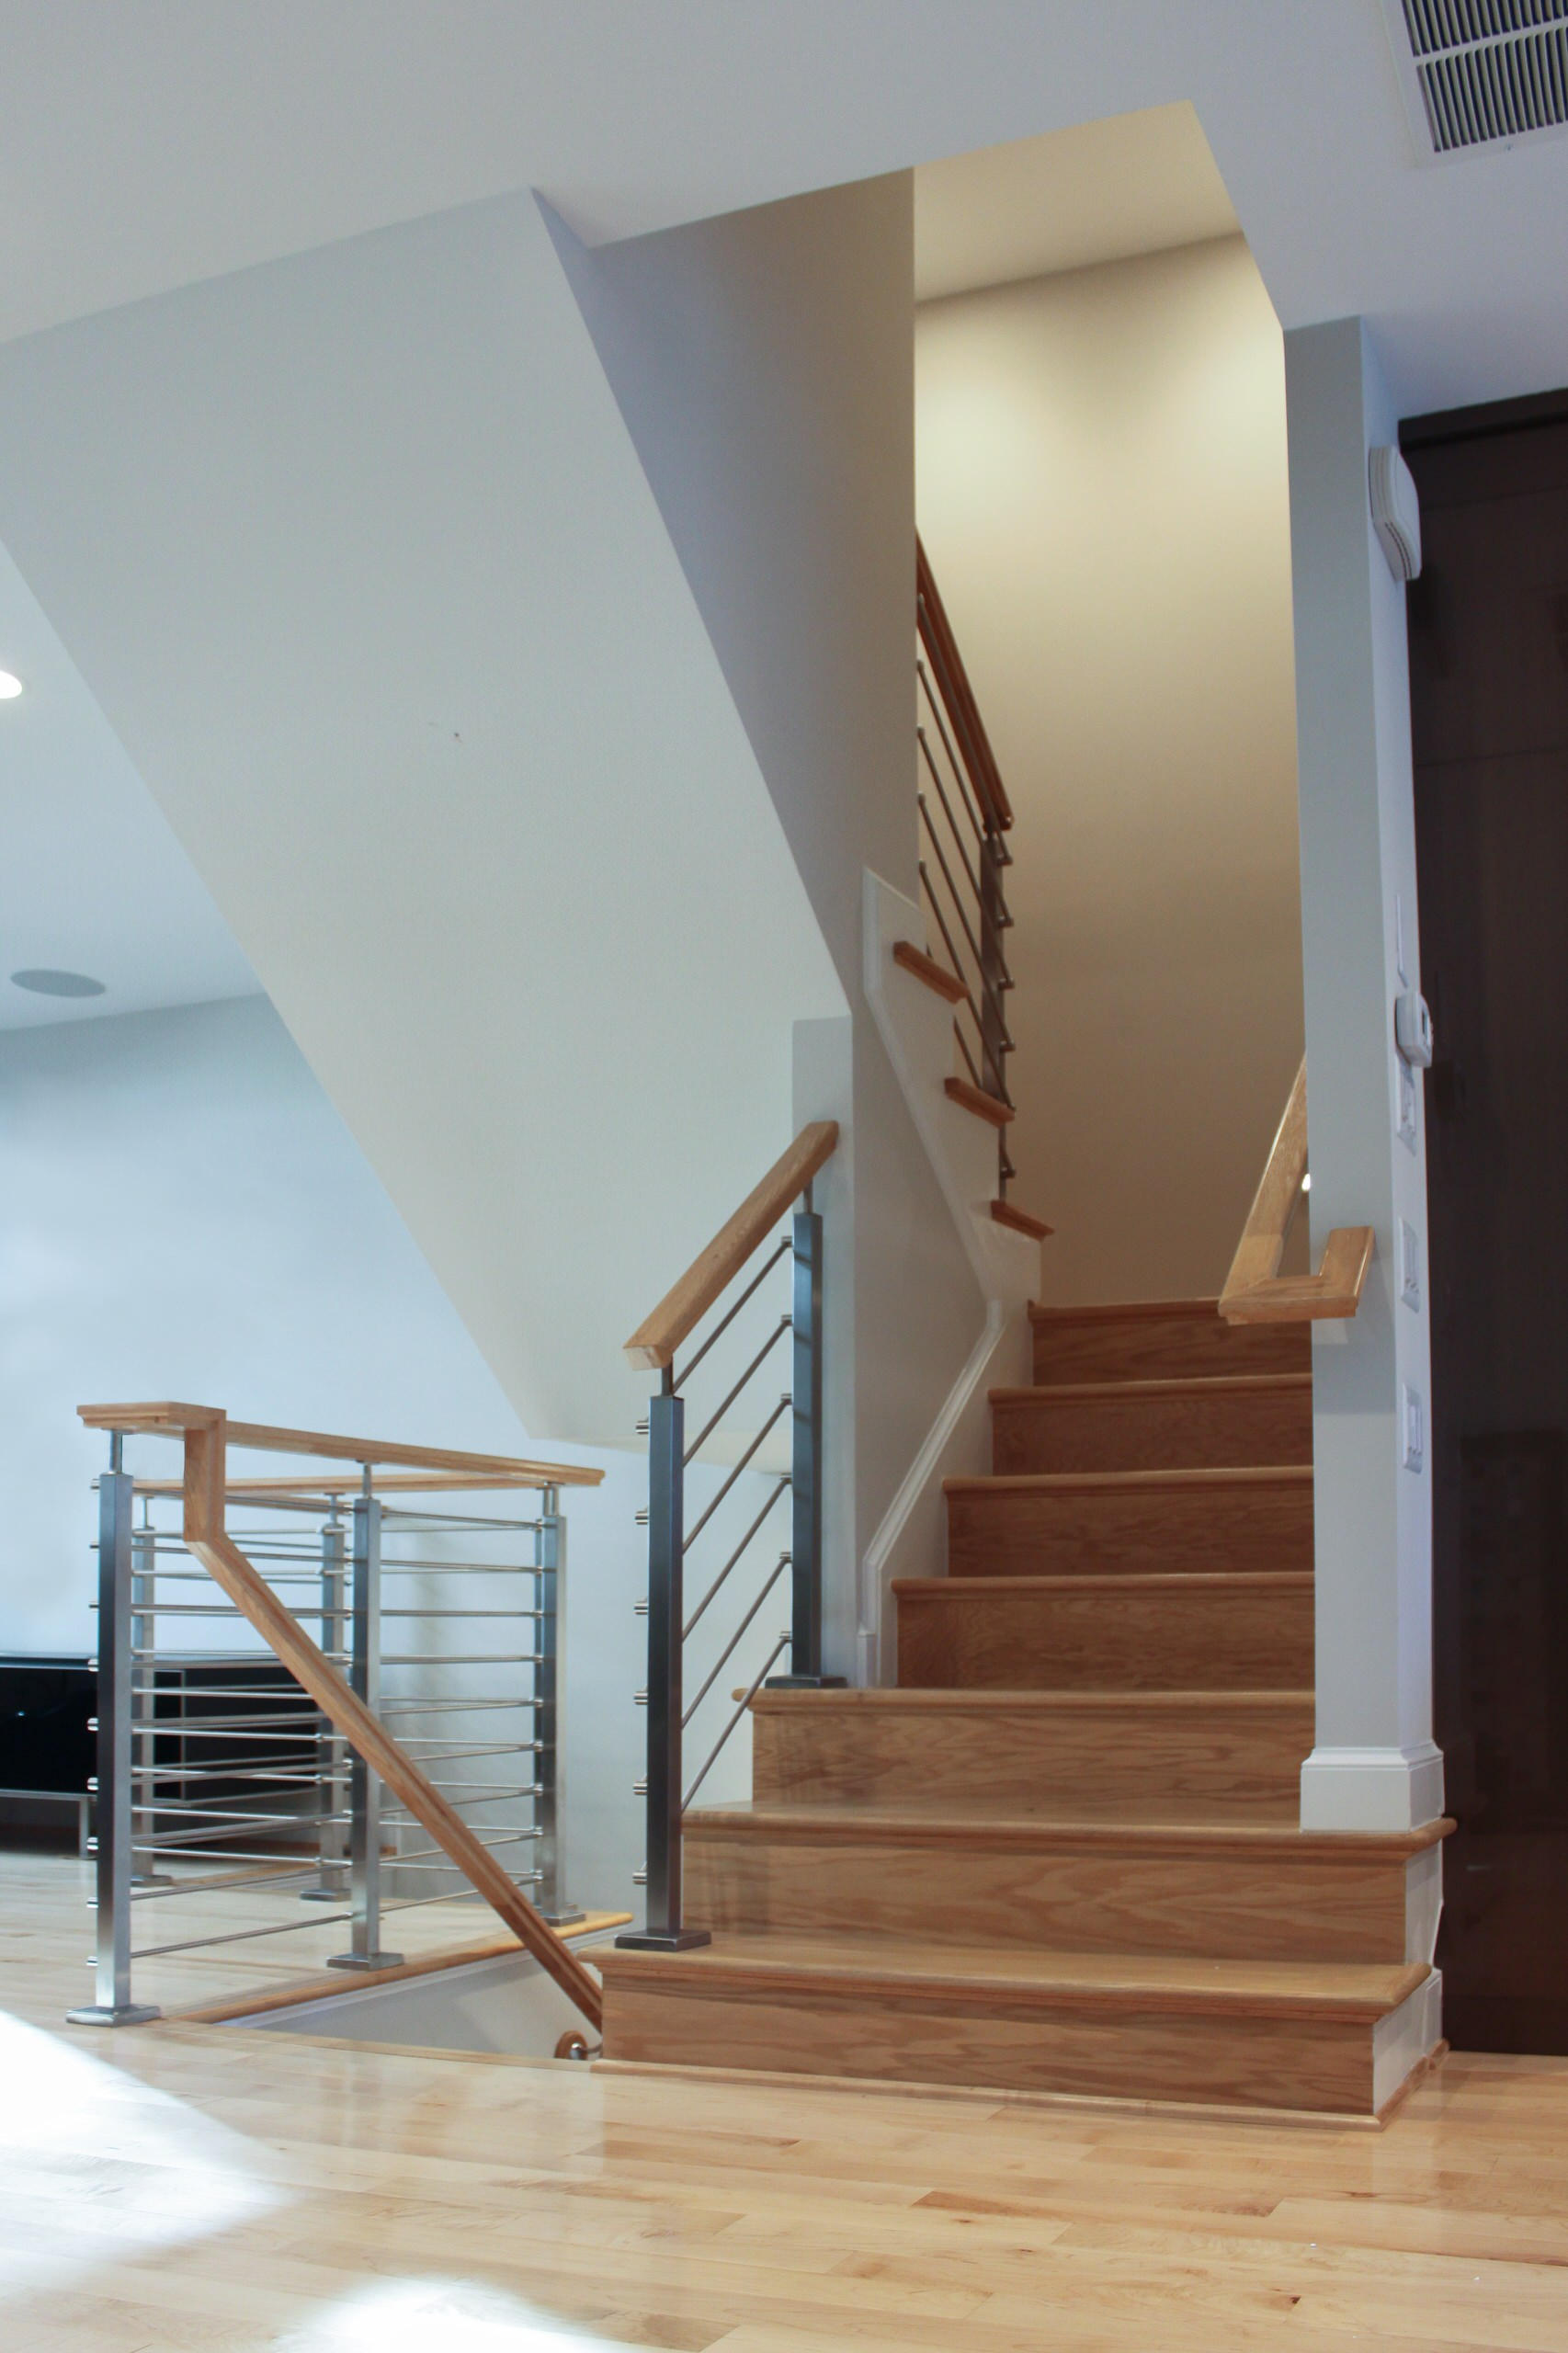 26_Modern Staircase to Private Rooftop, Arlington VA 22209